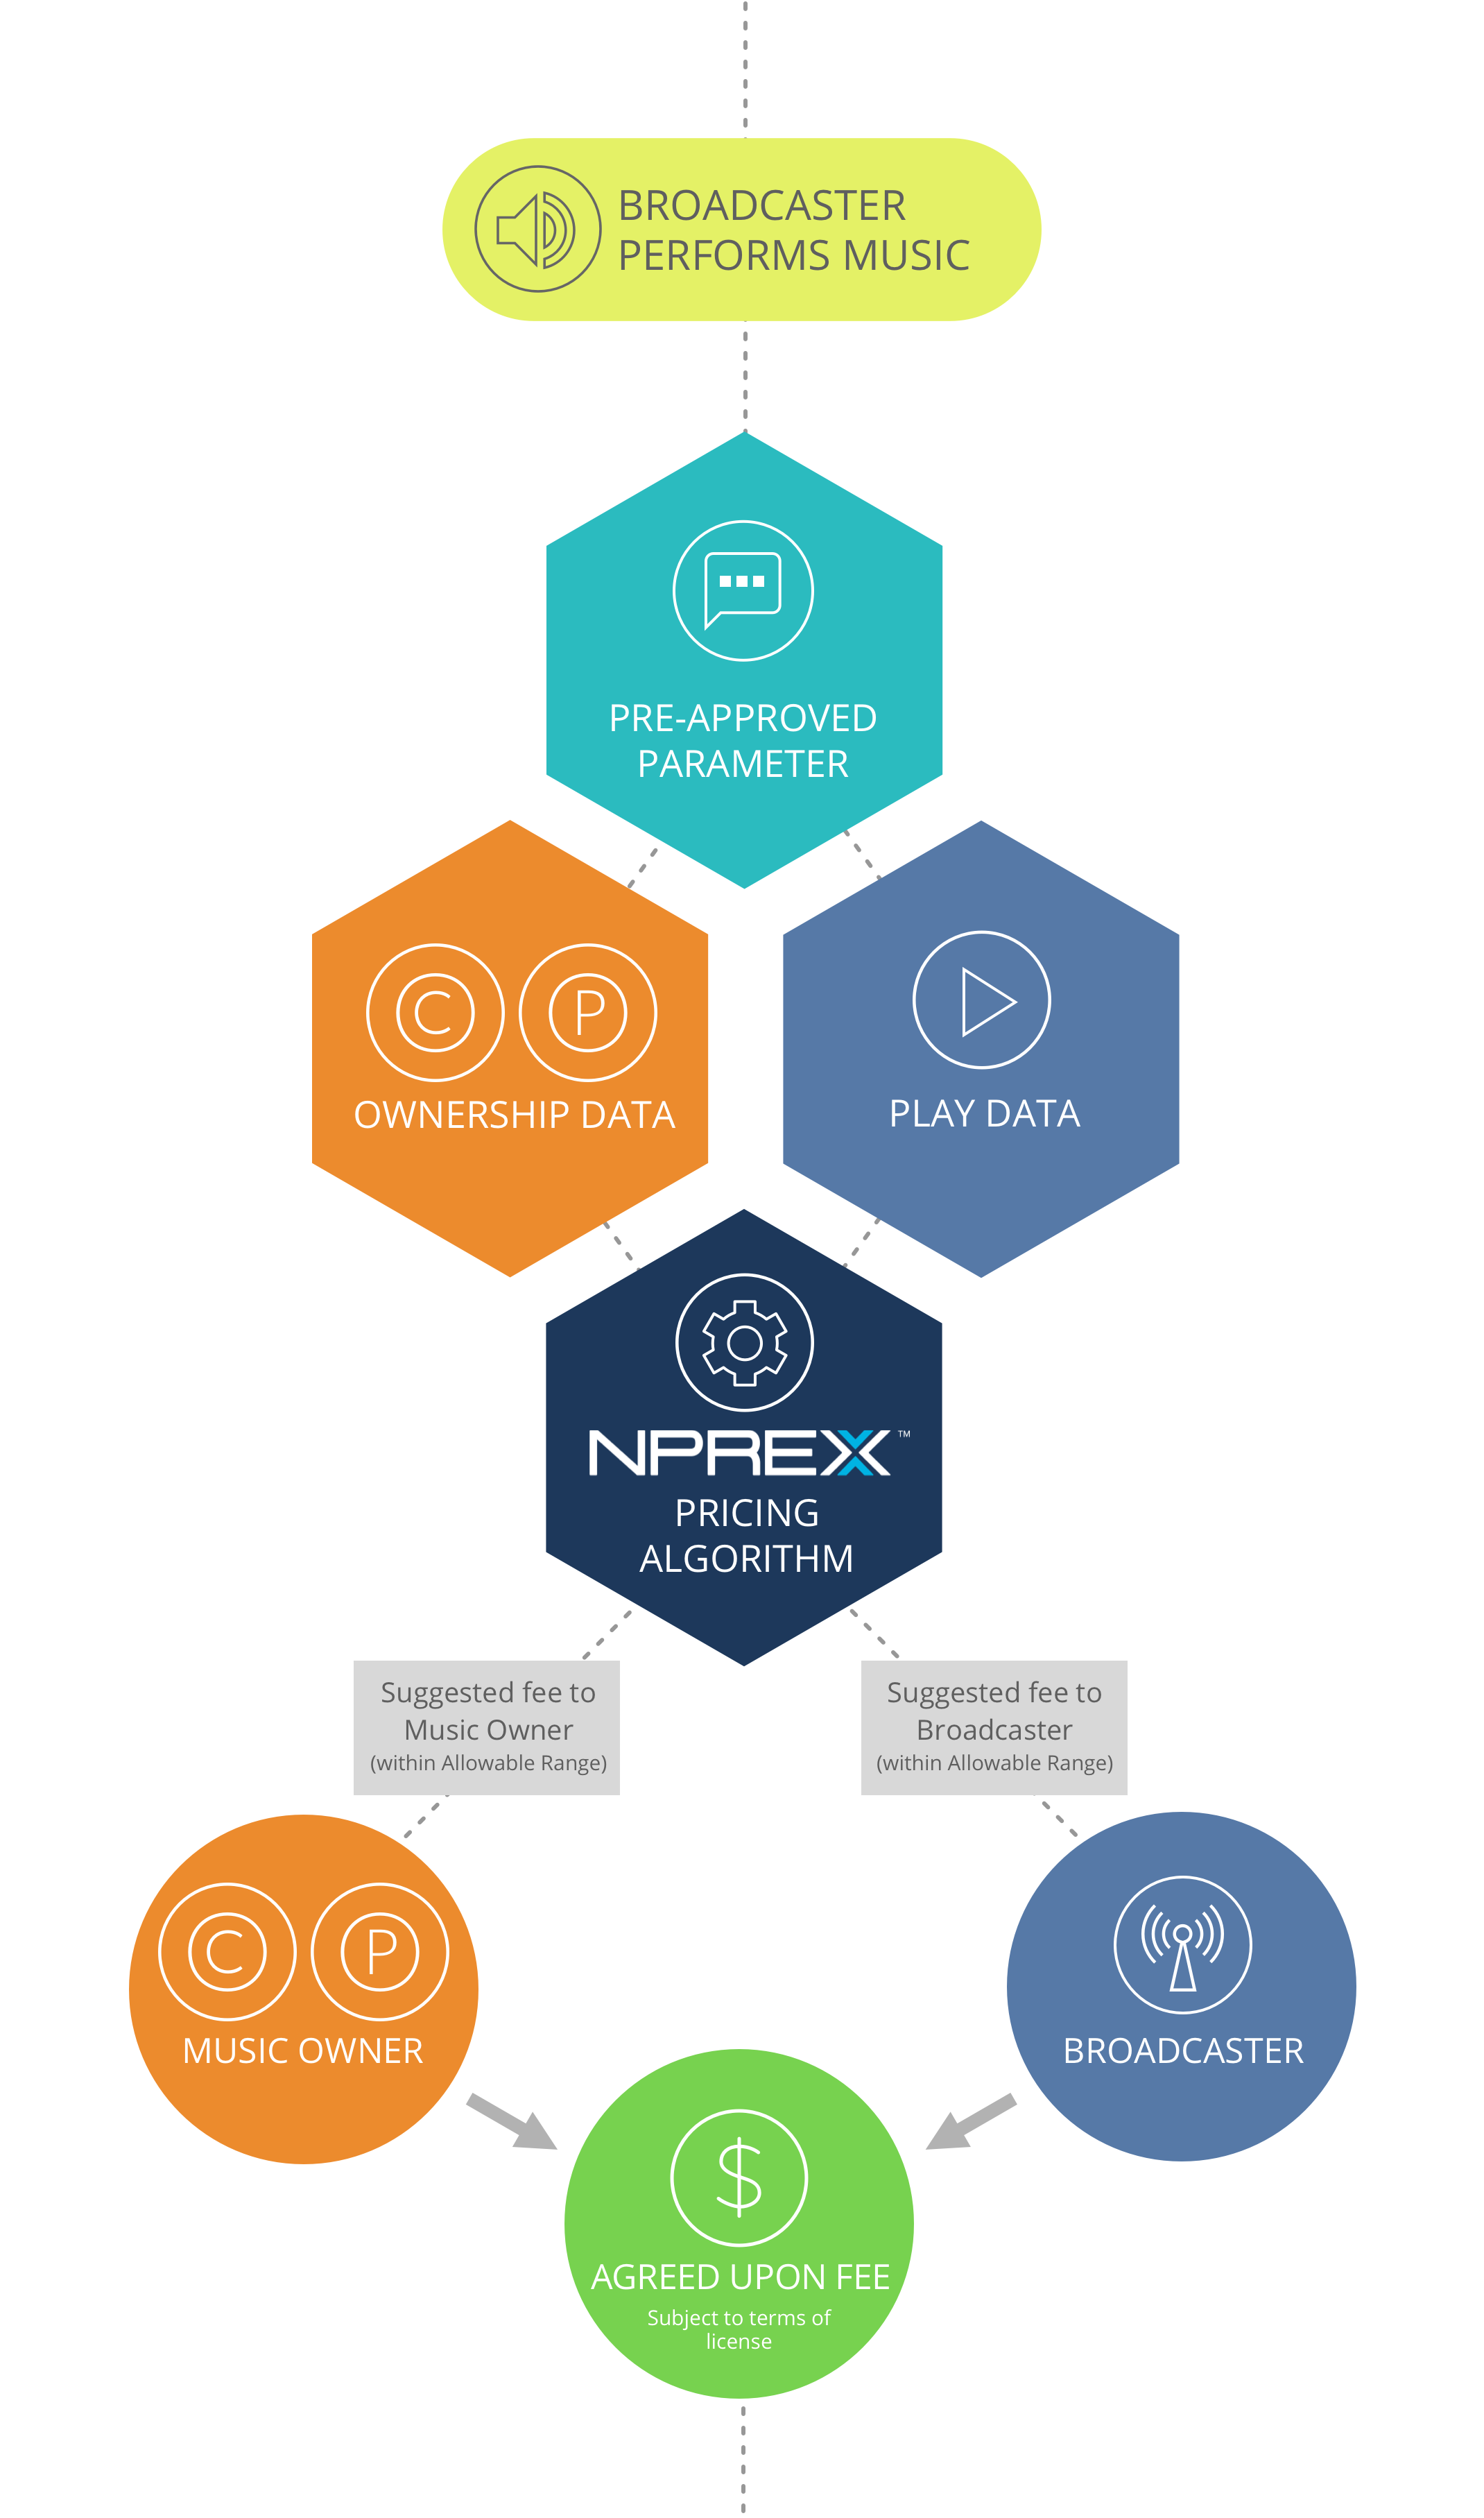 NPREX Pricing Algorithm Diagram